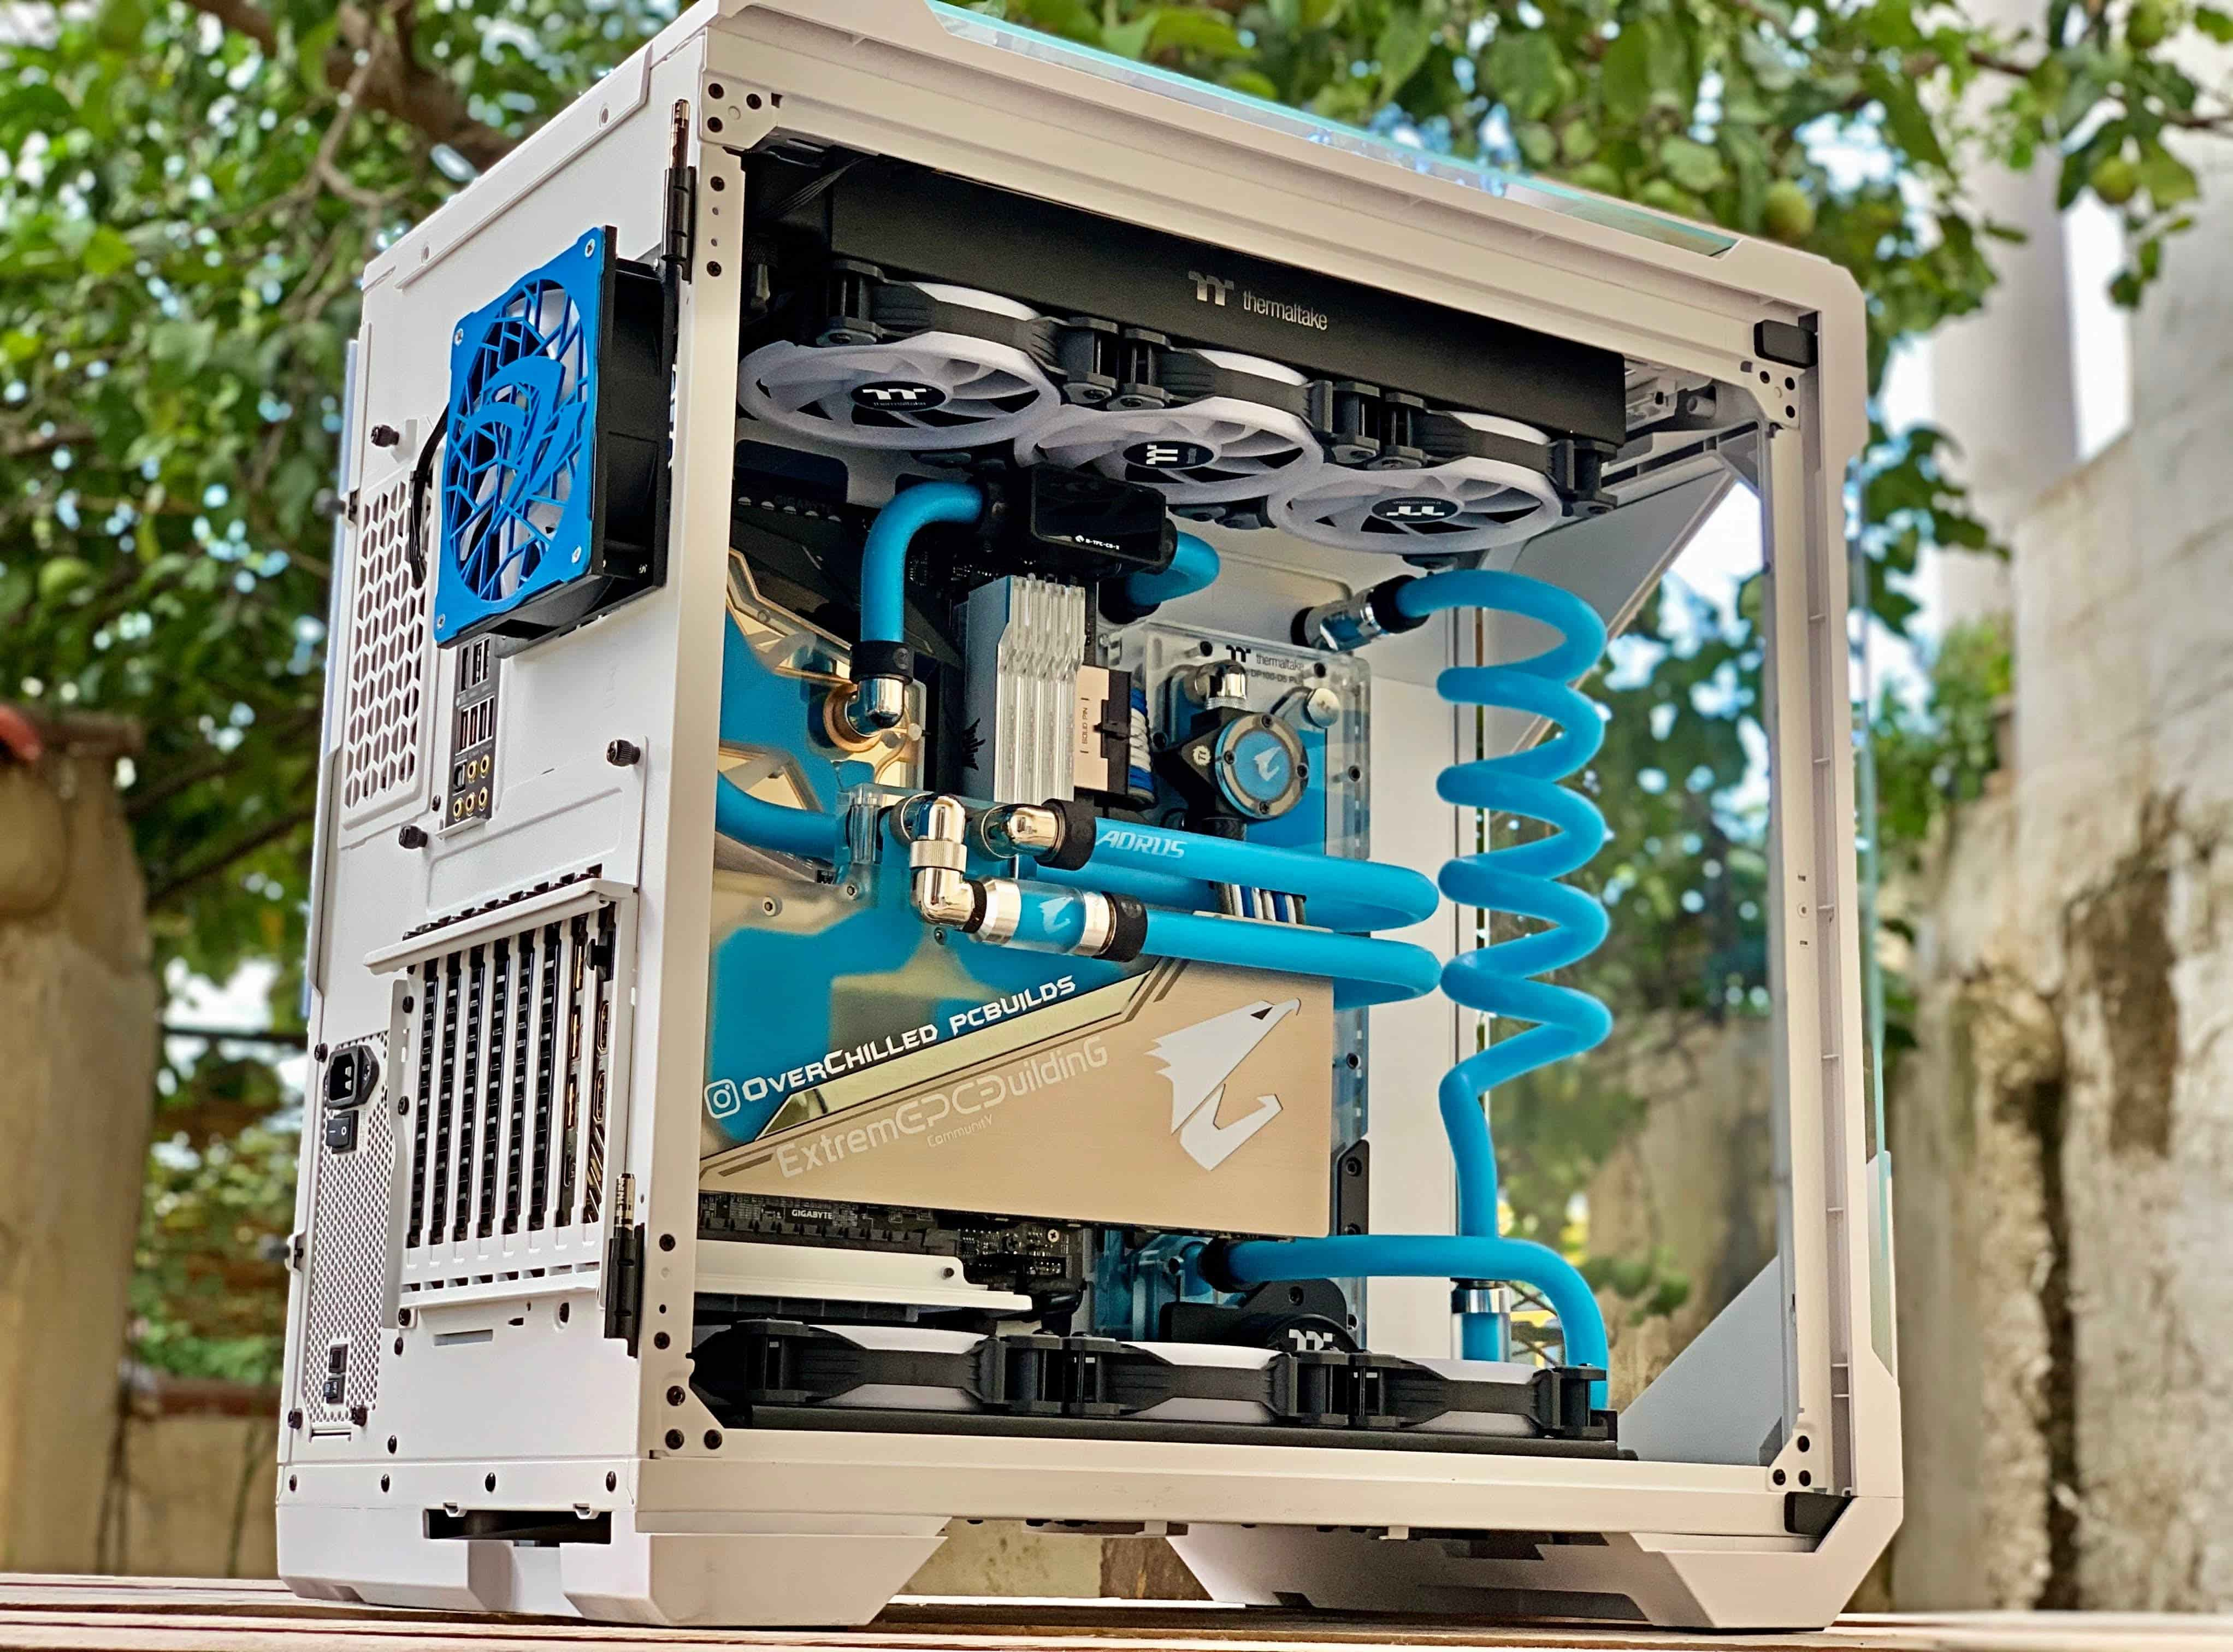 What Is a Custom Water Loop?